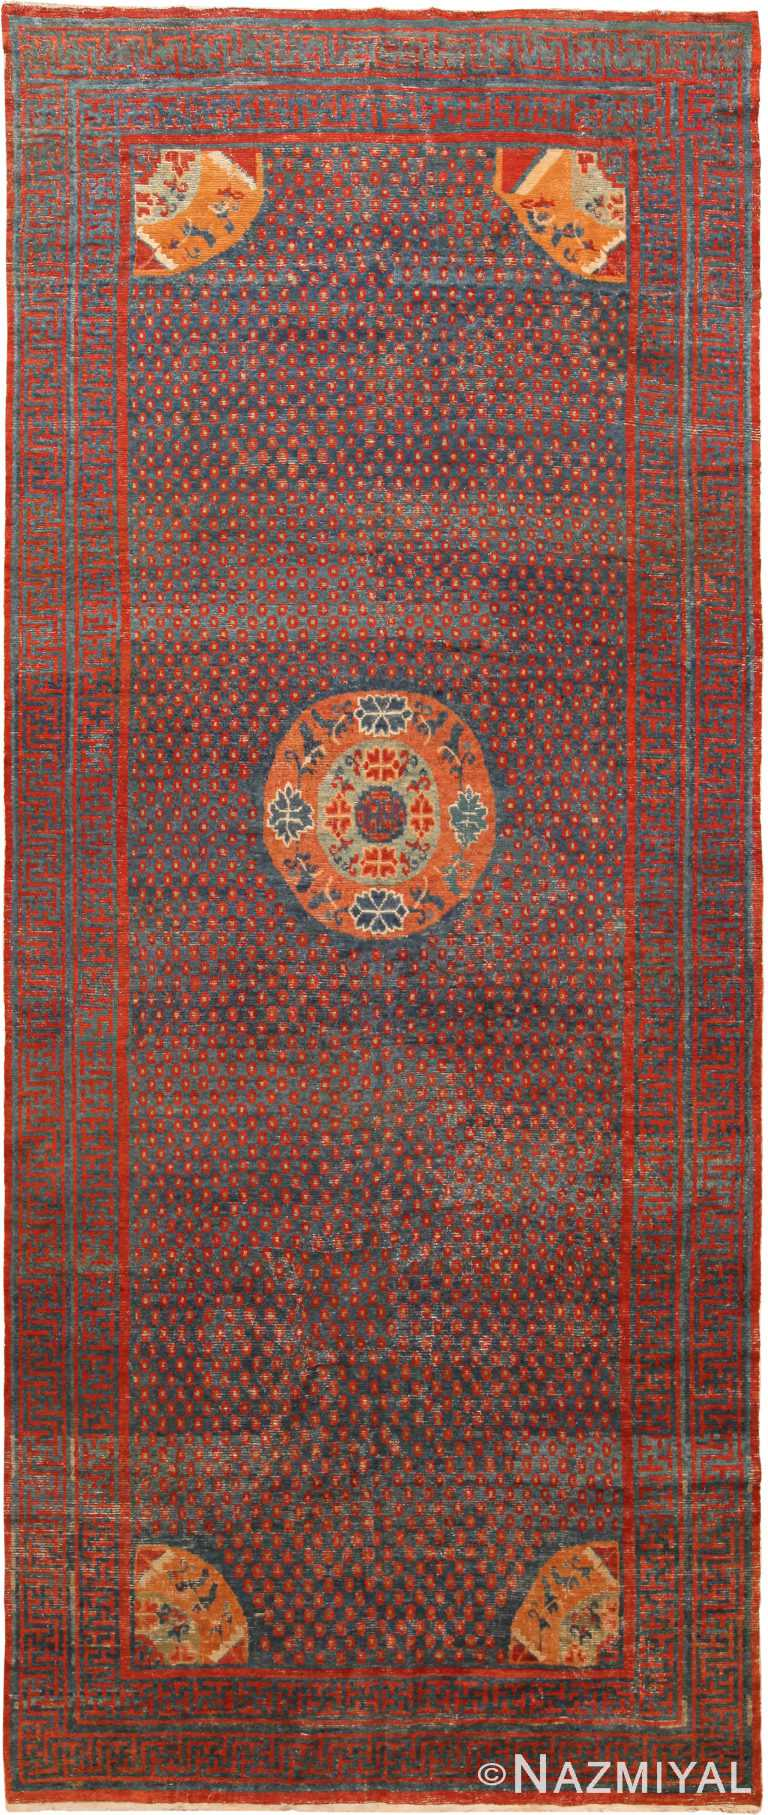 18th Century Antique Chinese Kansu Gallery Size Rug 70865 by Nazmiyal Antique Rugs